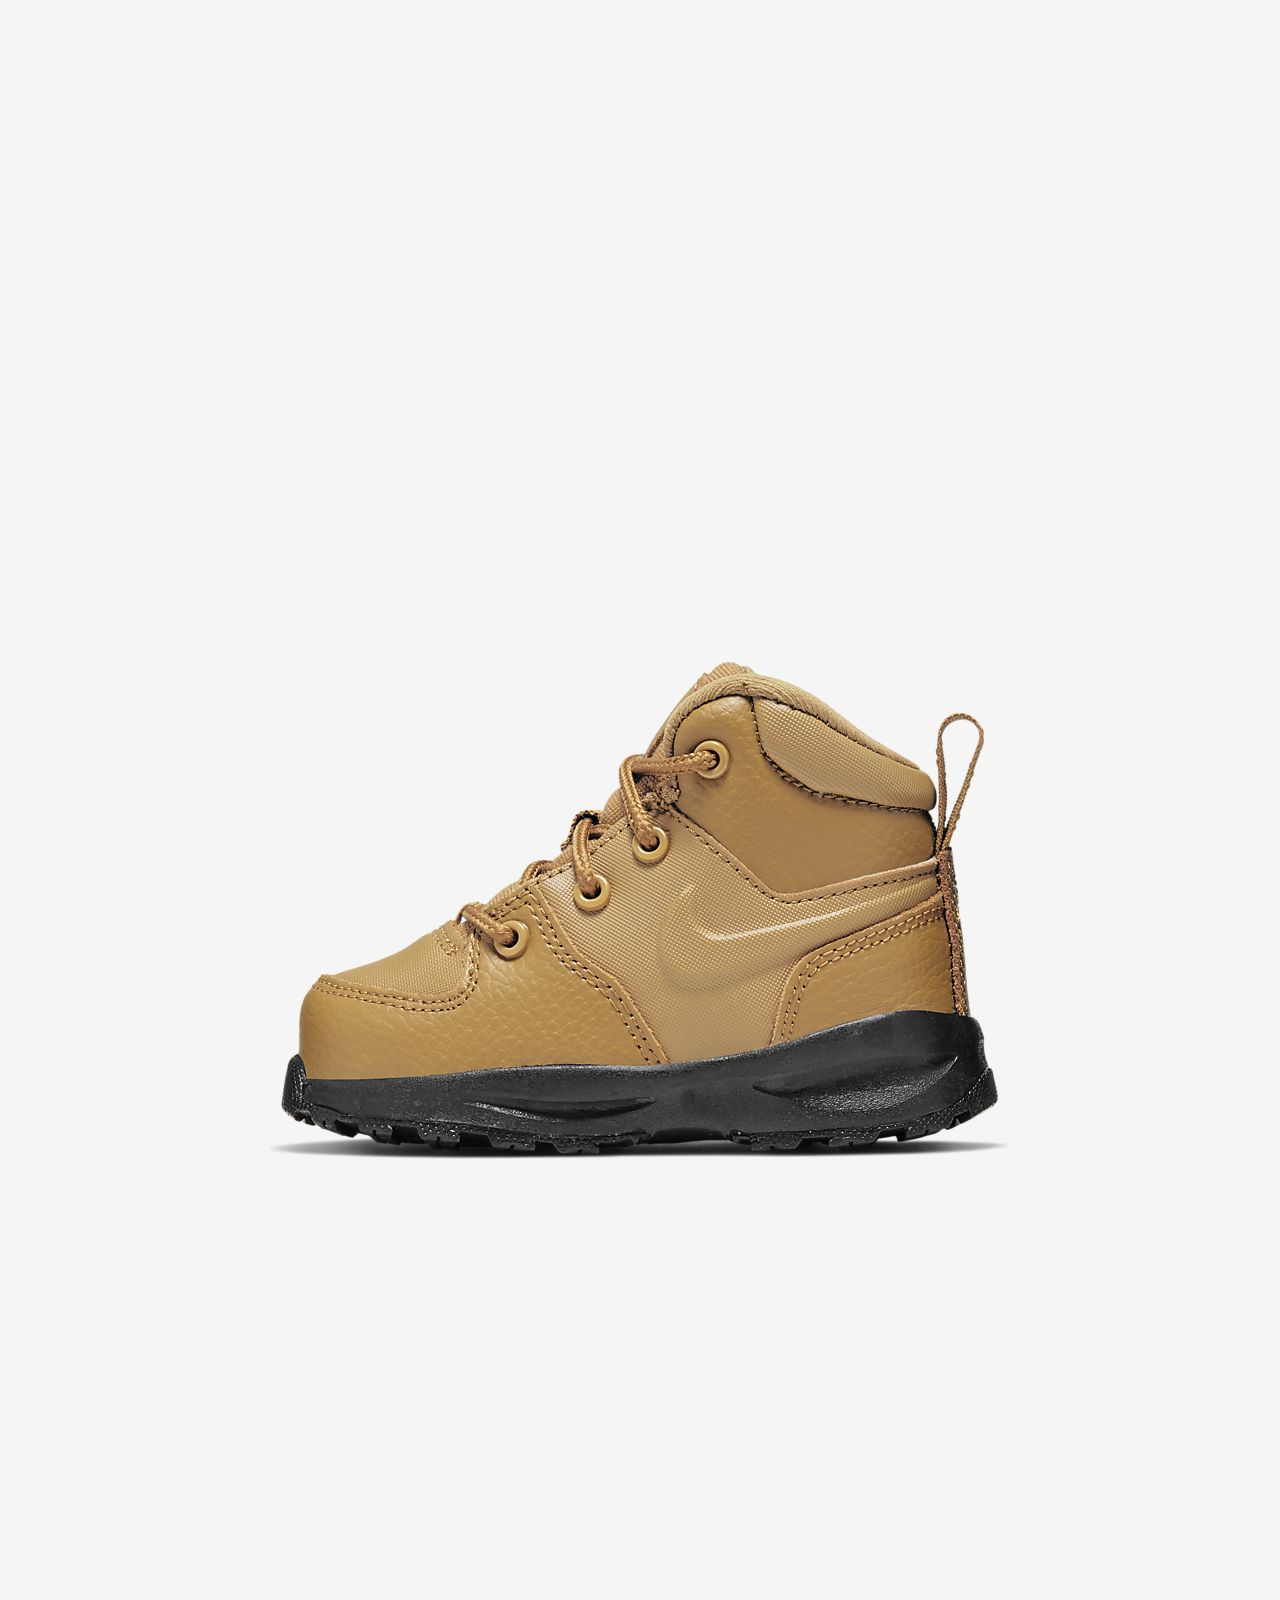 Nike Manoa Baby and Toddler Boot